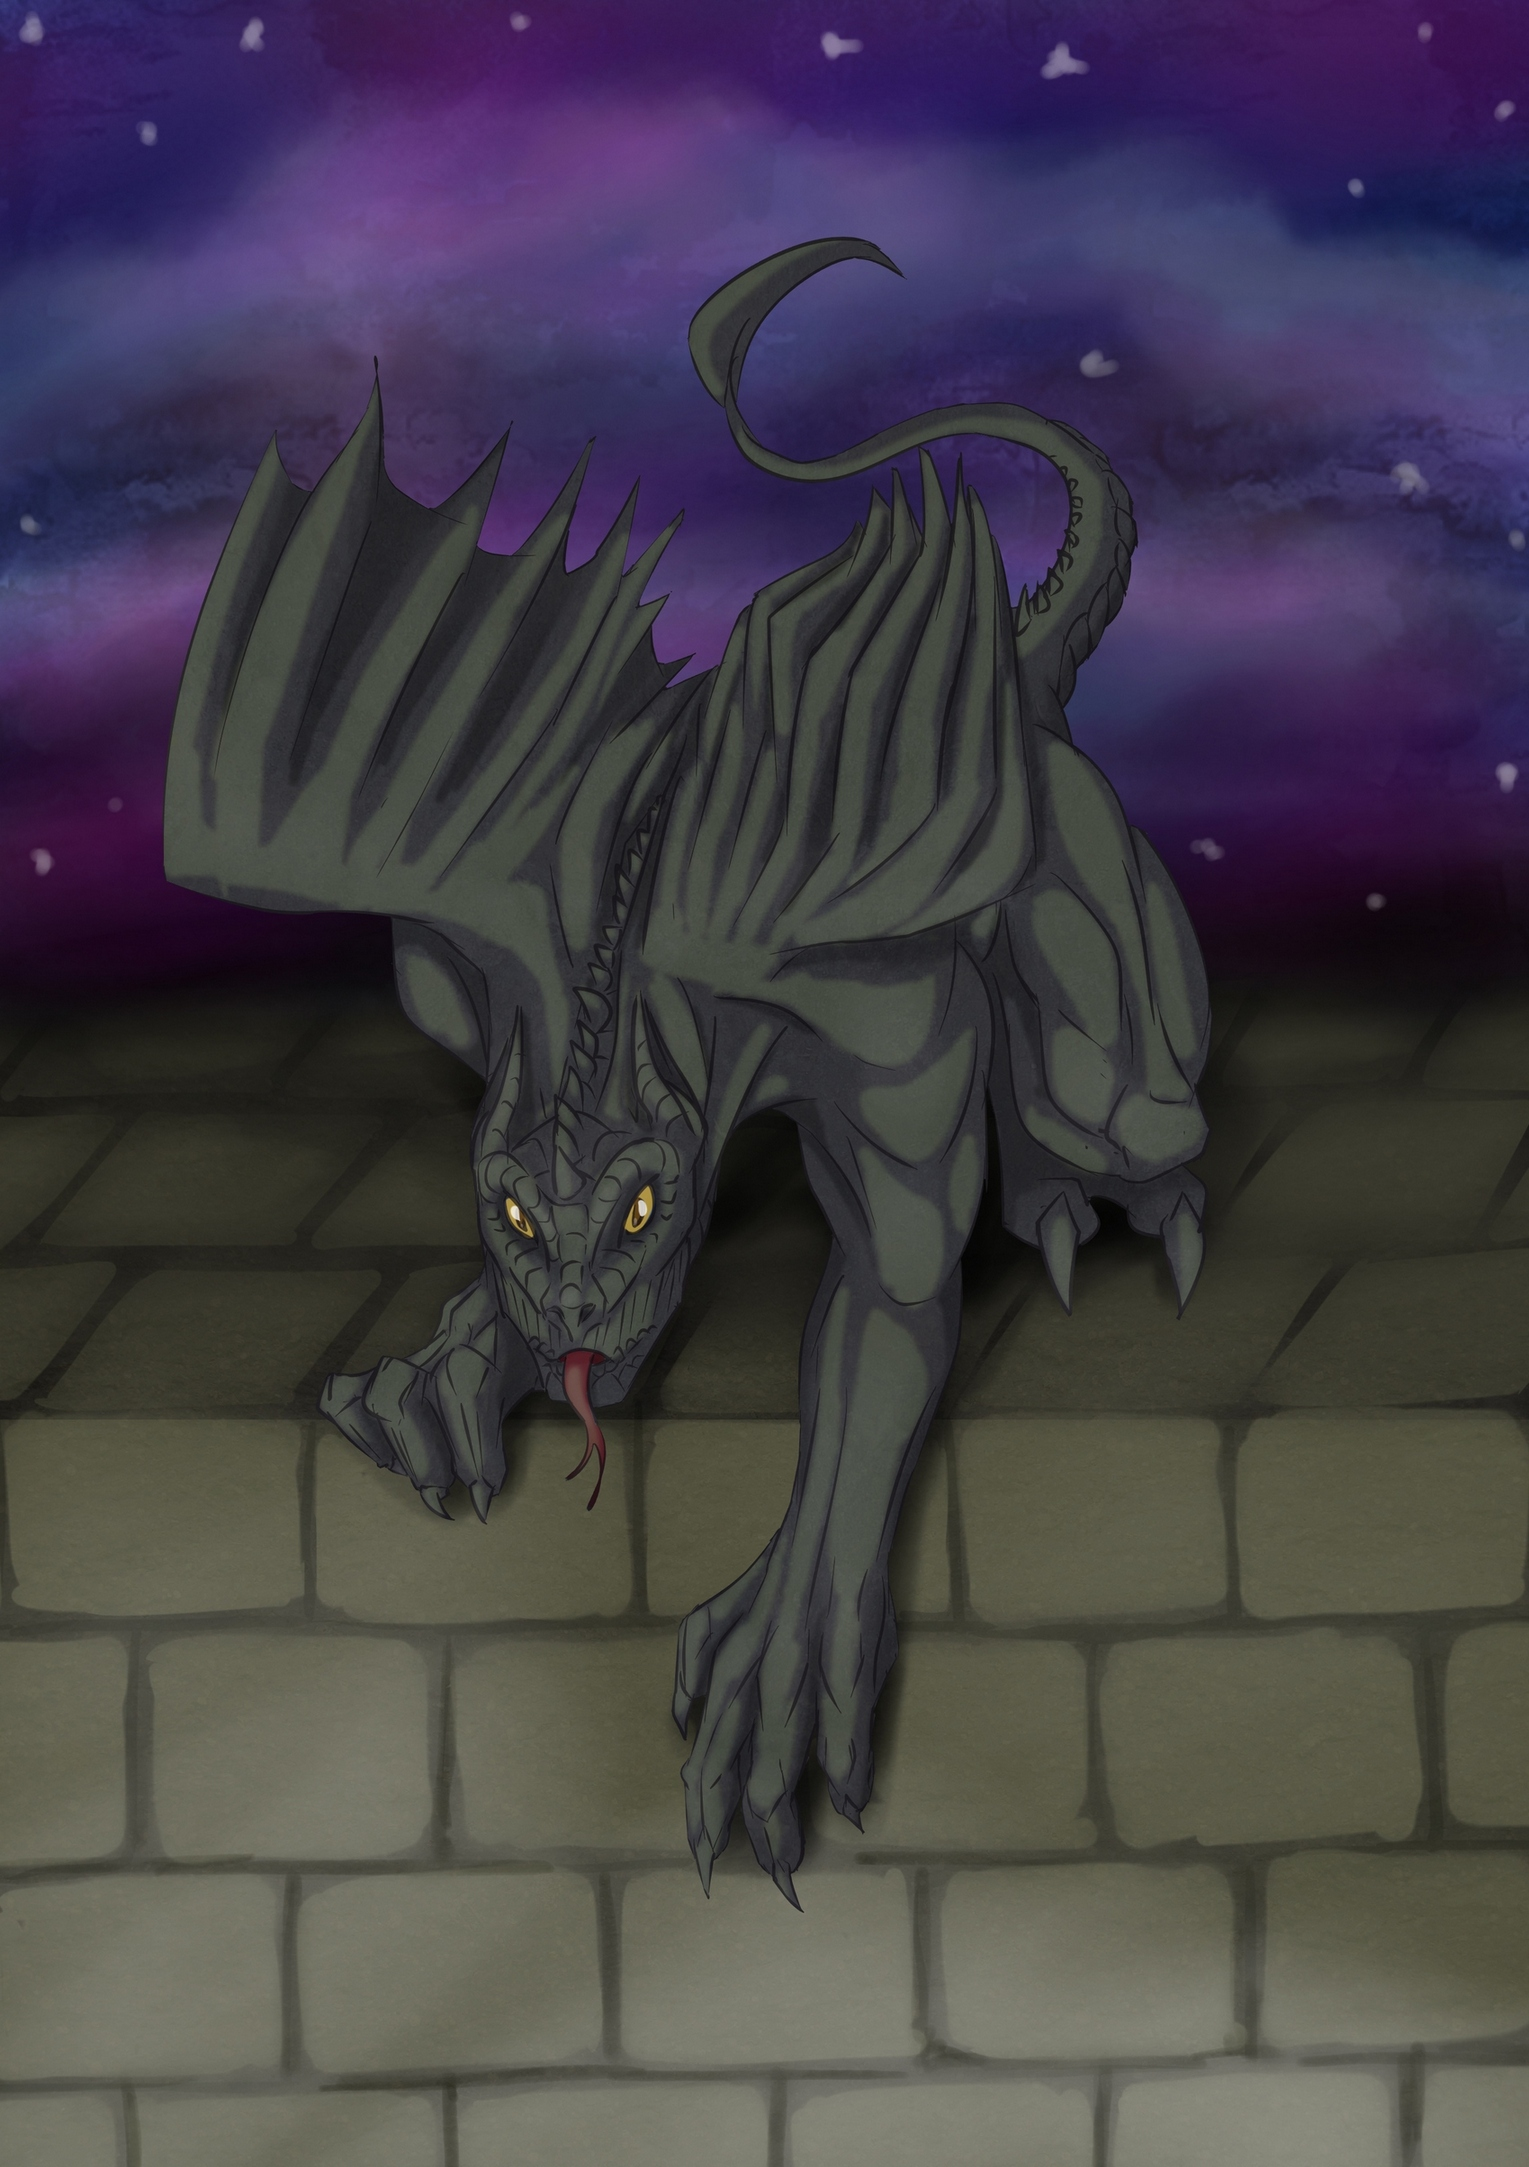 A curious Dragoyle